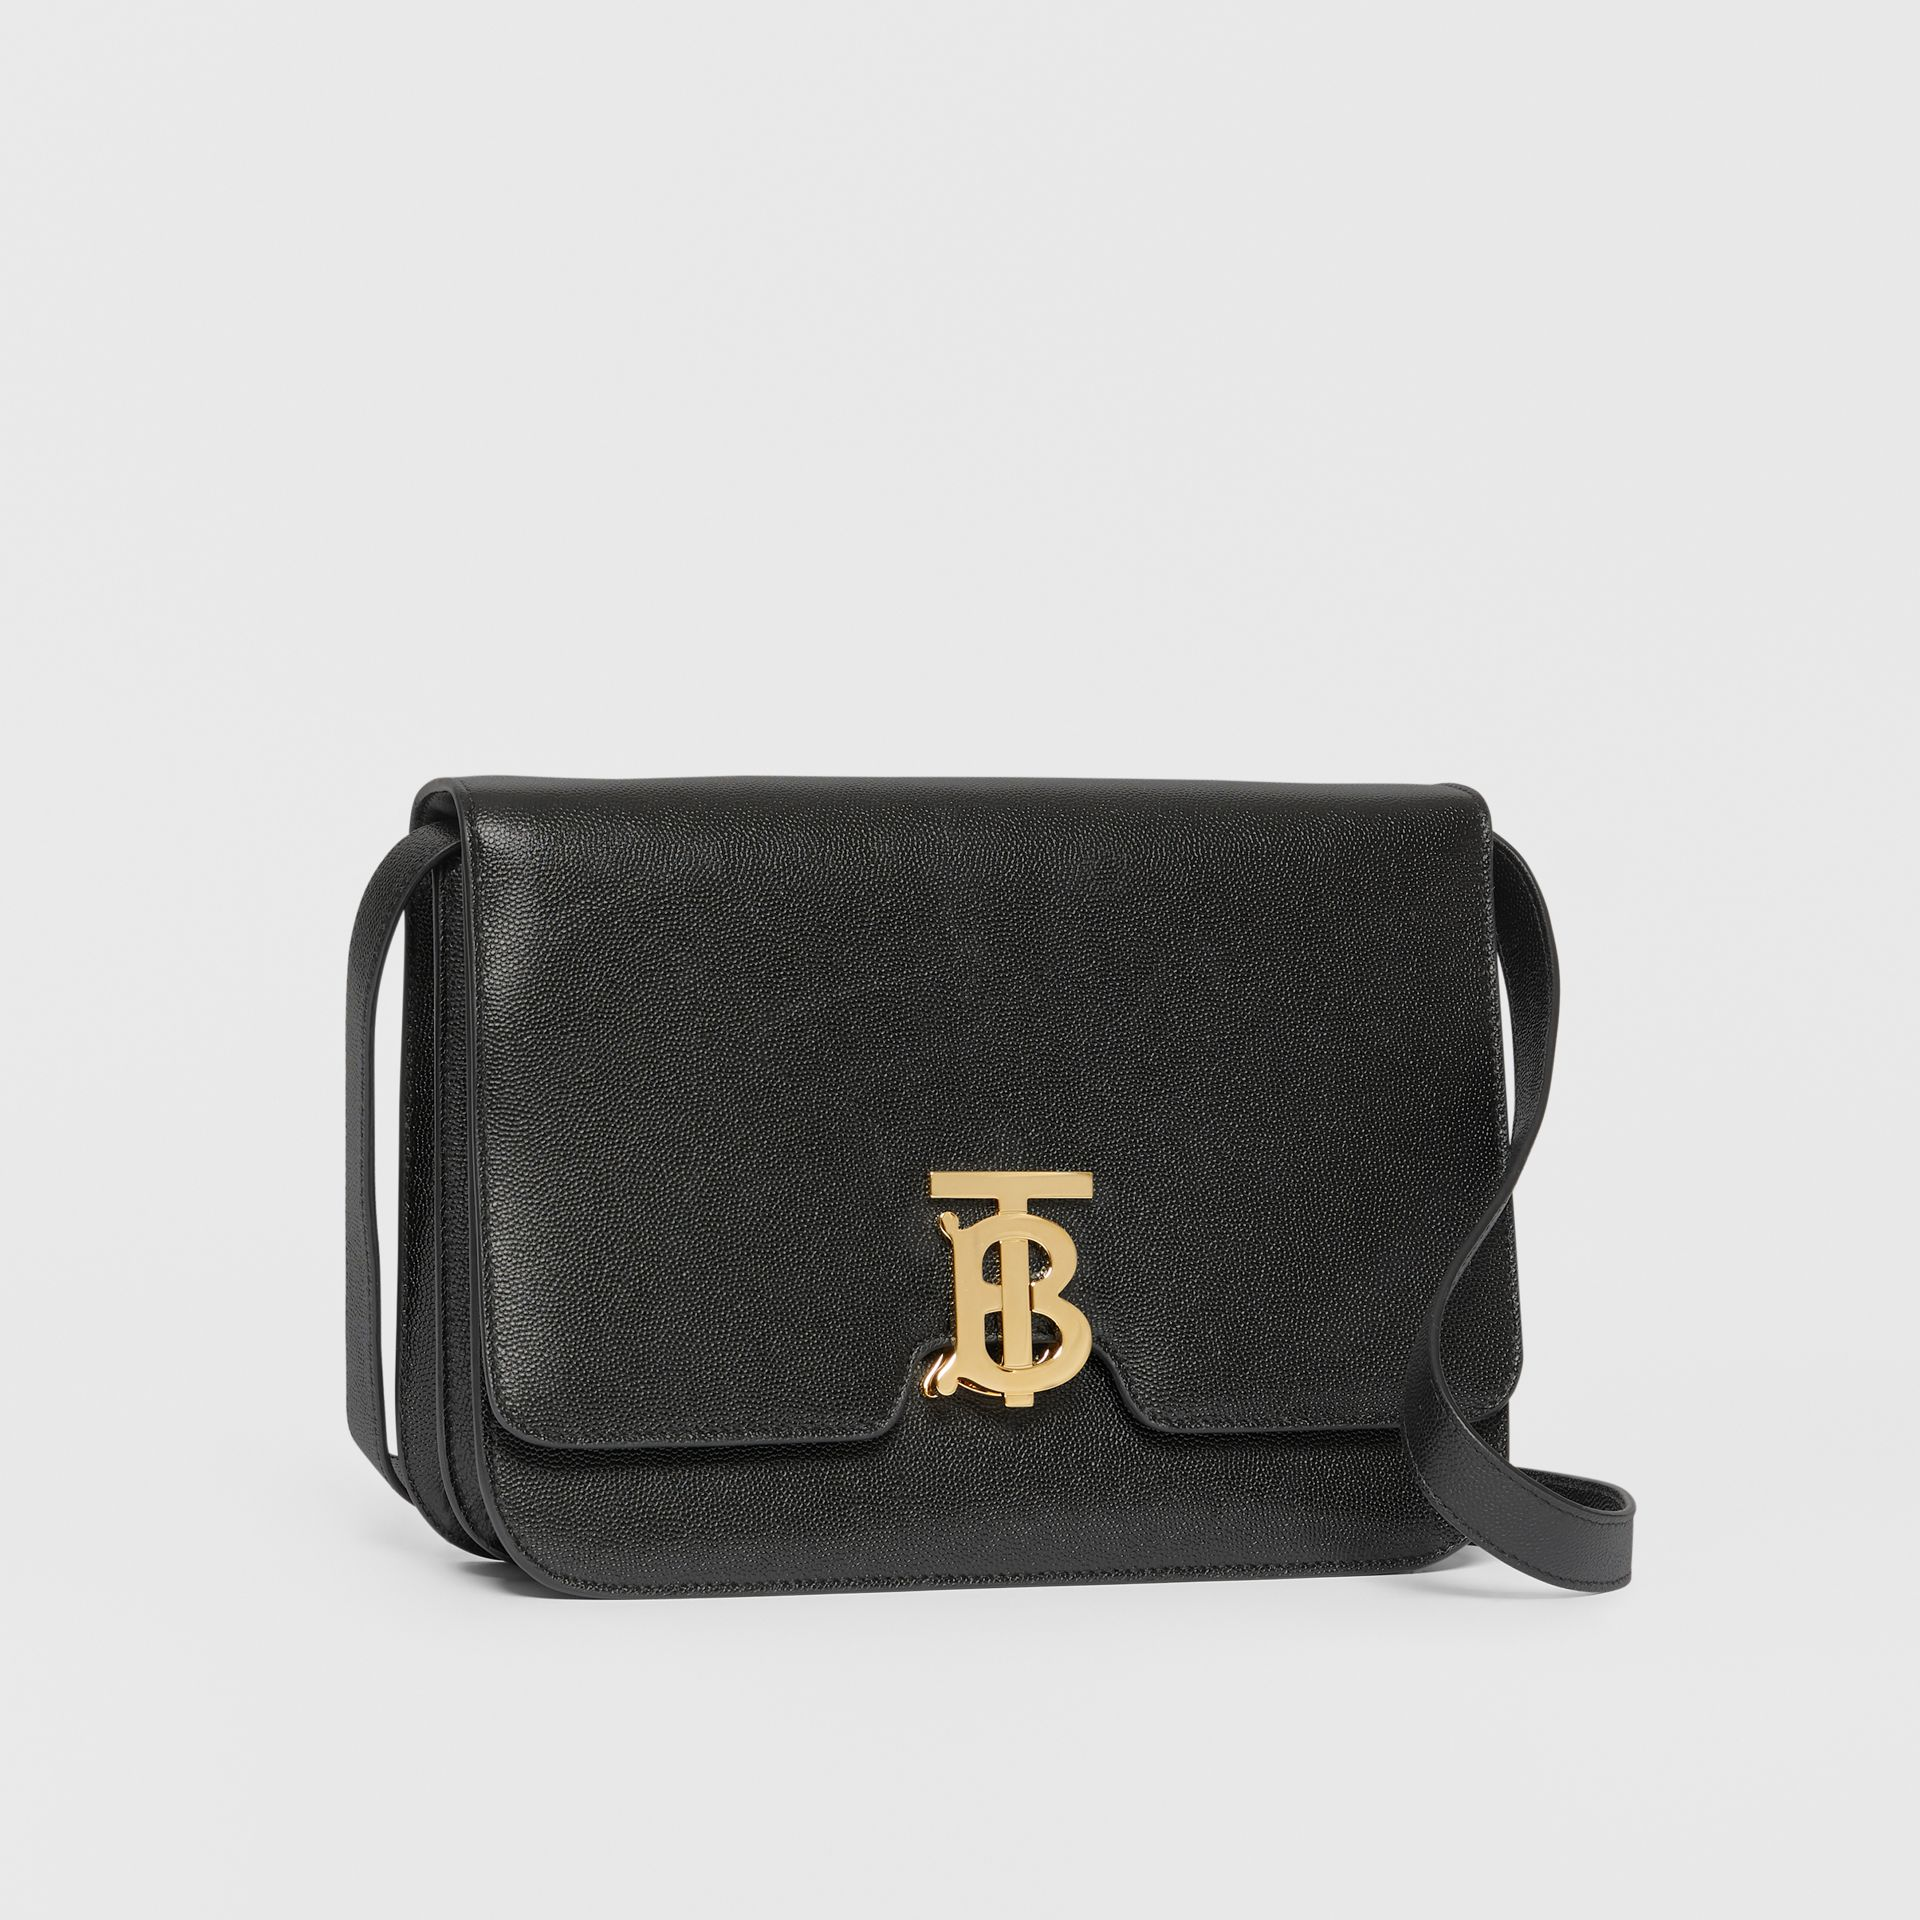 Medium Grainy Leather TB Bag in Black - Women | Burberry United States - gallery image 6